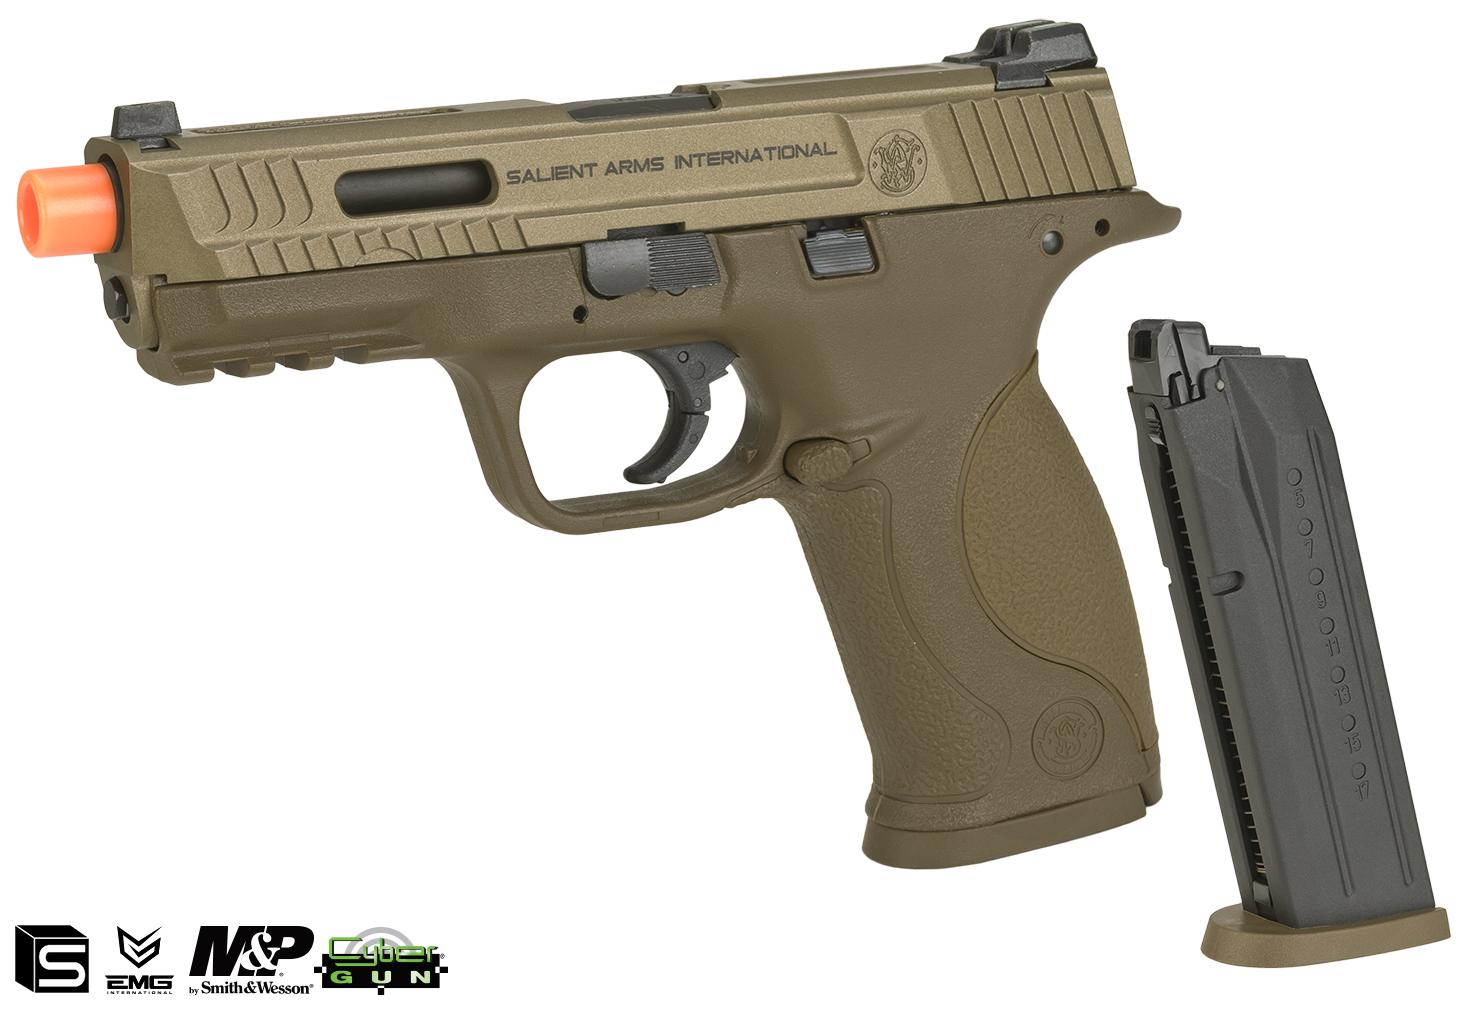 EMG / SAI / Smith & Wesson Licensed M&P 9 Full Size Airsoft GBB Pistol (Package: Tan / Add Extra Magazine)